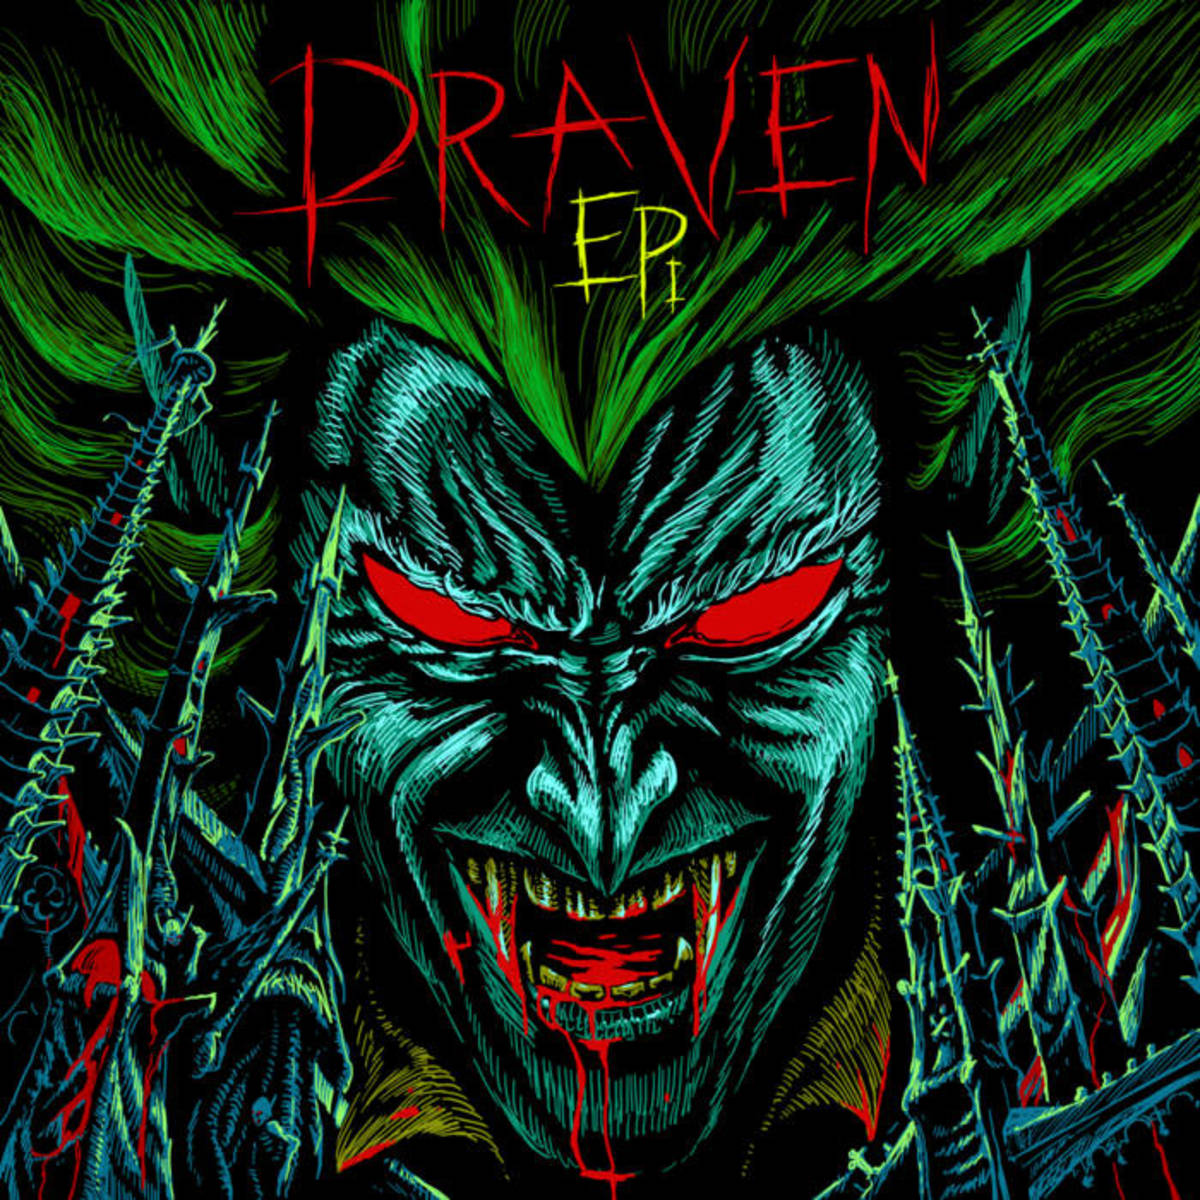 darksynth-album-review-ep-1-by-draven